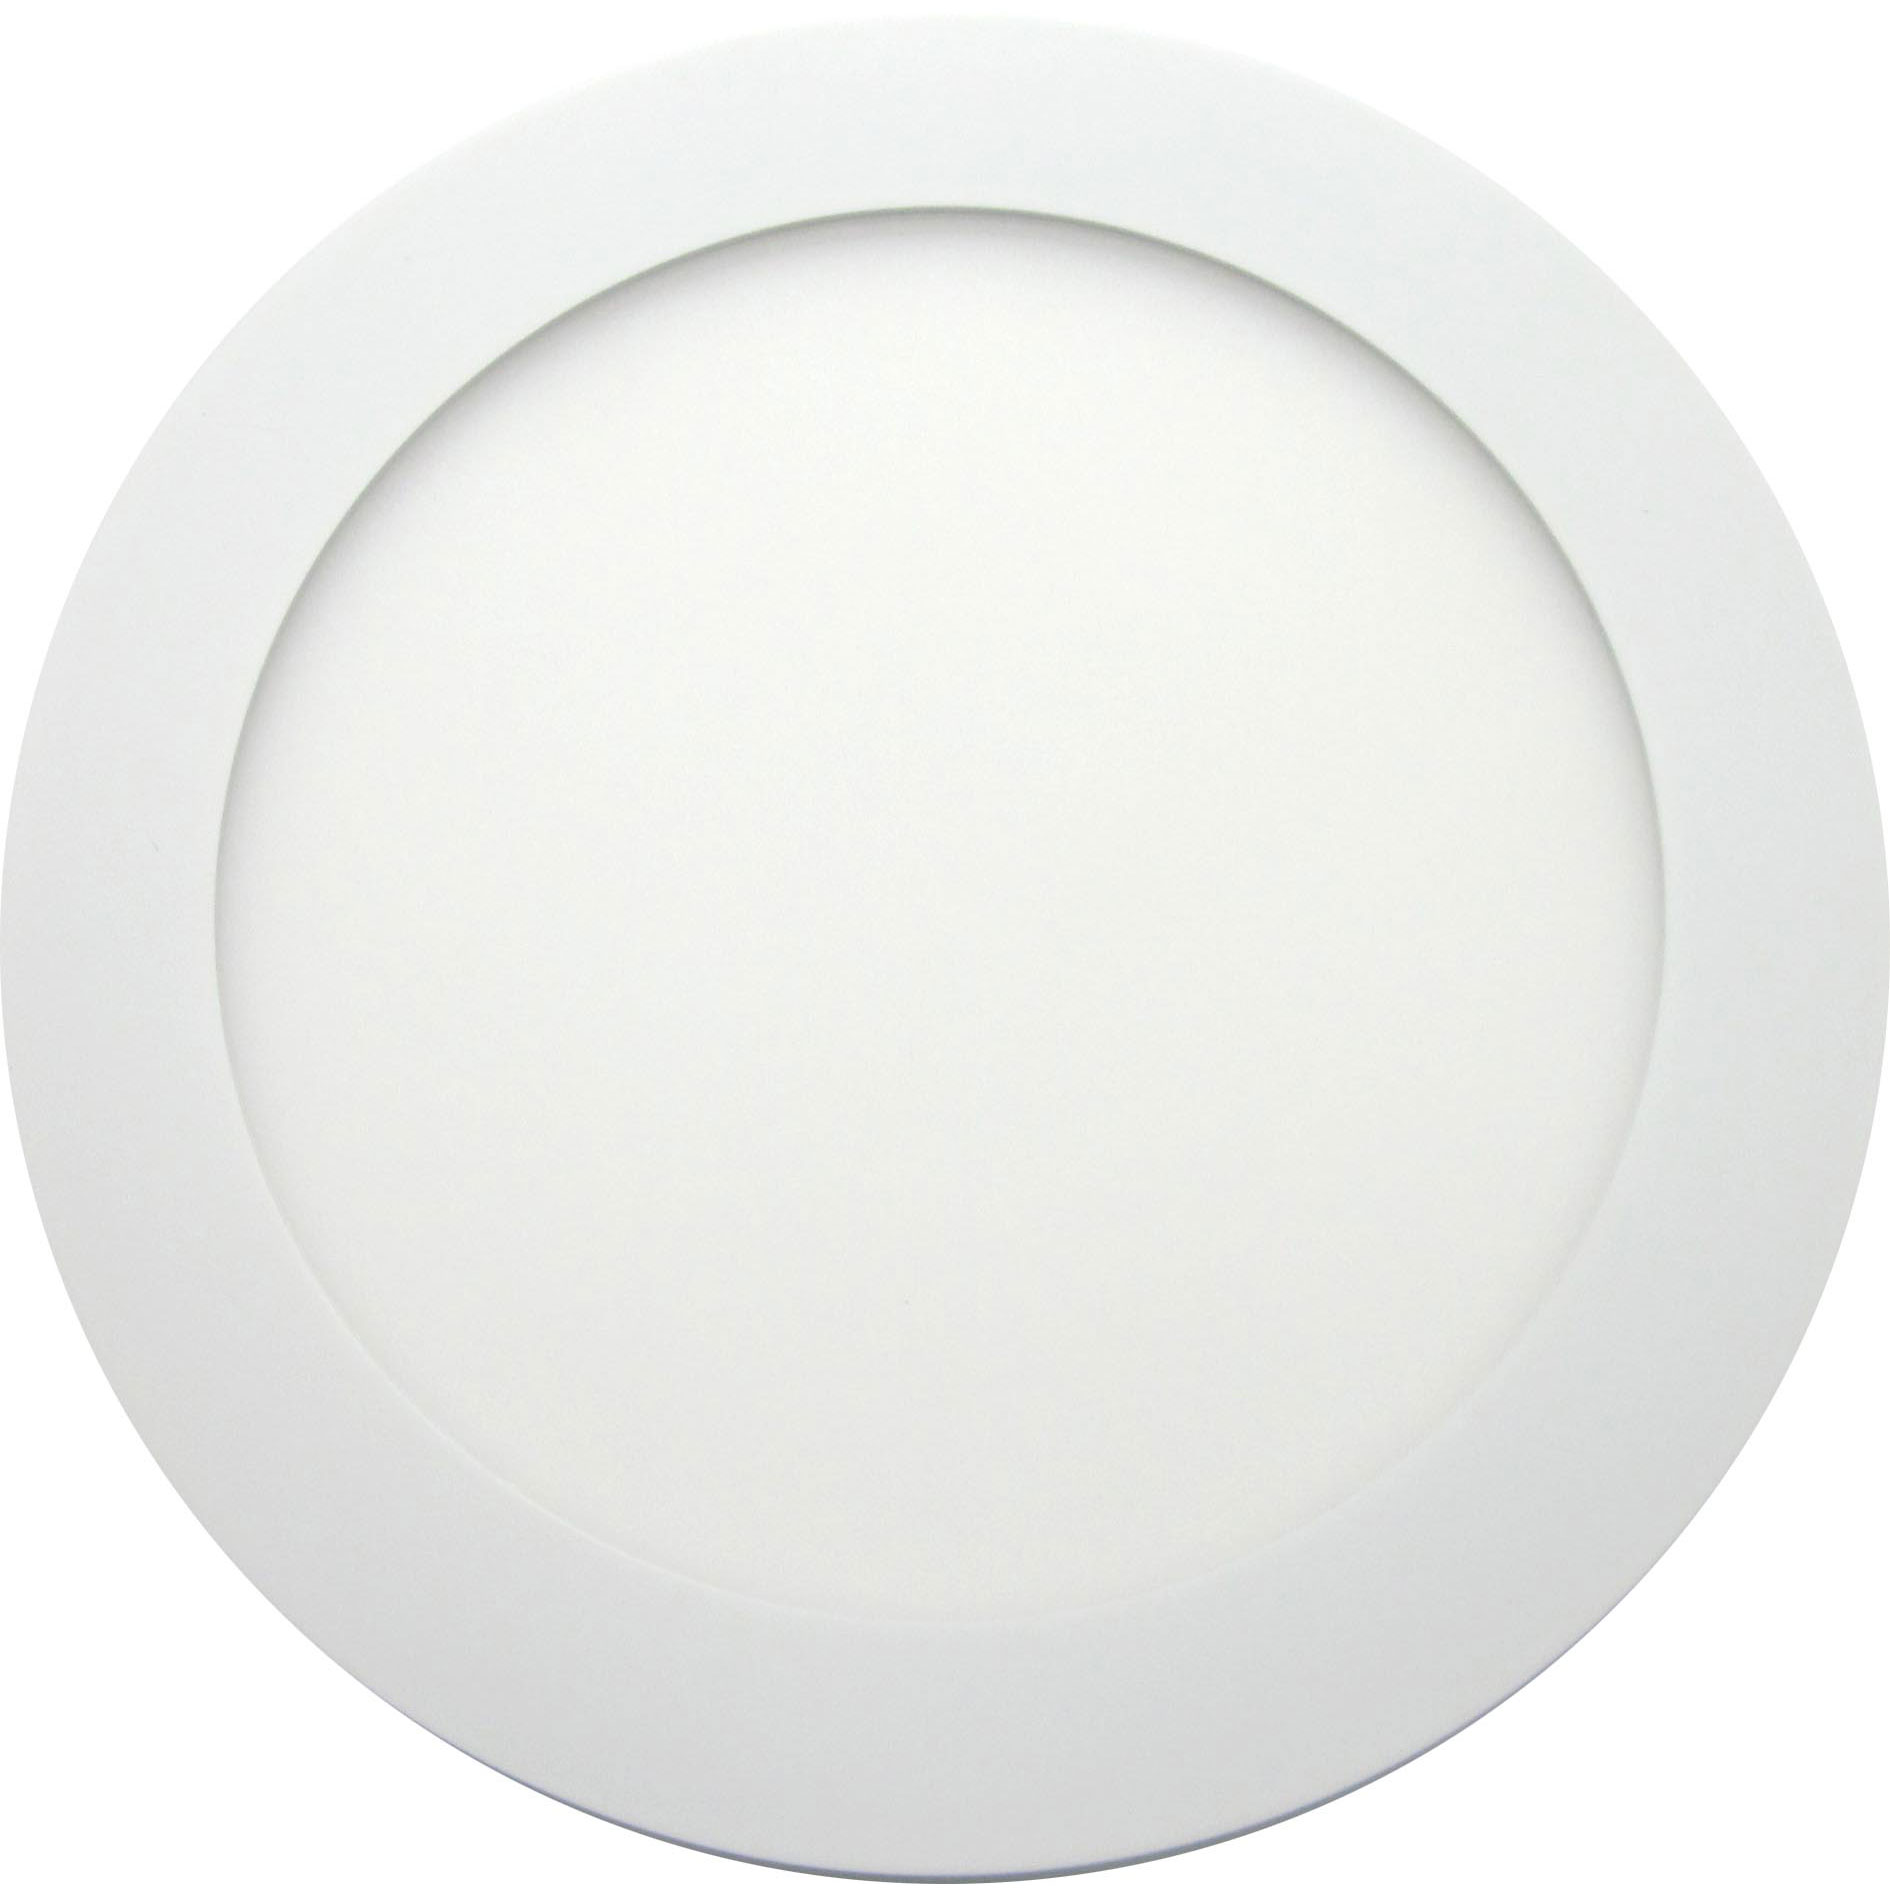 BL LED PANEL 190MM 15W 840 ROUND ND 50K NON DIMMABLE ARIAL